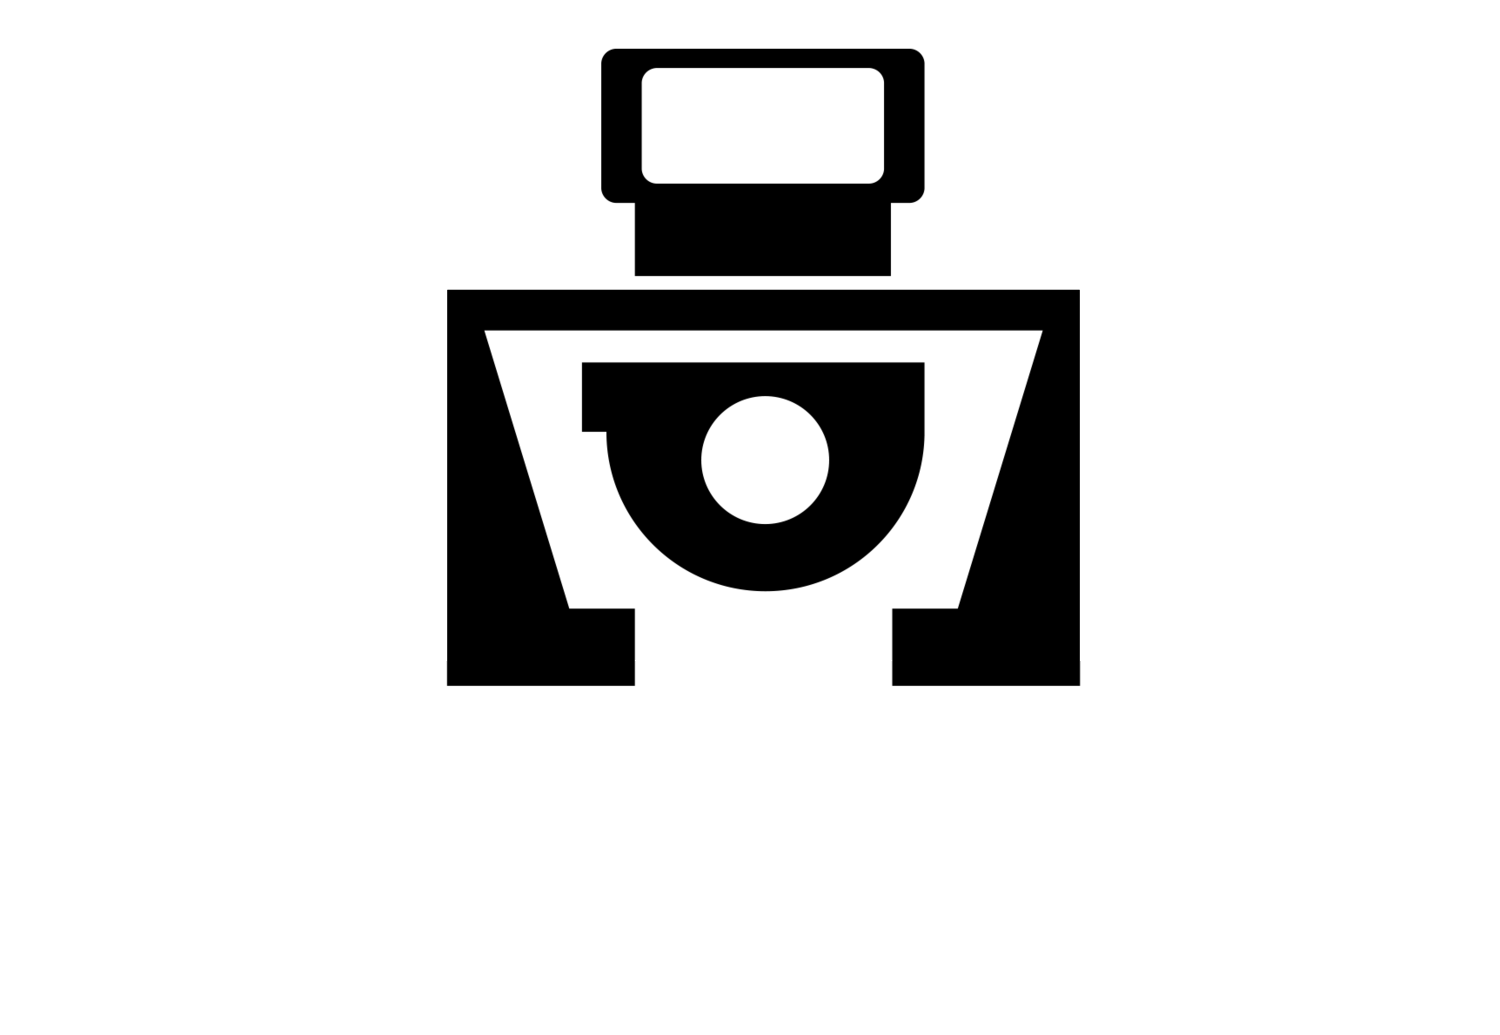 Phillips Creations